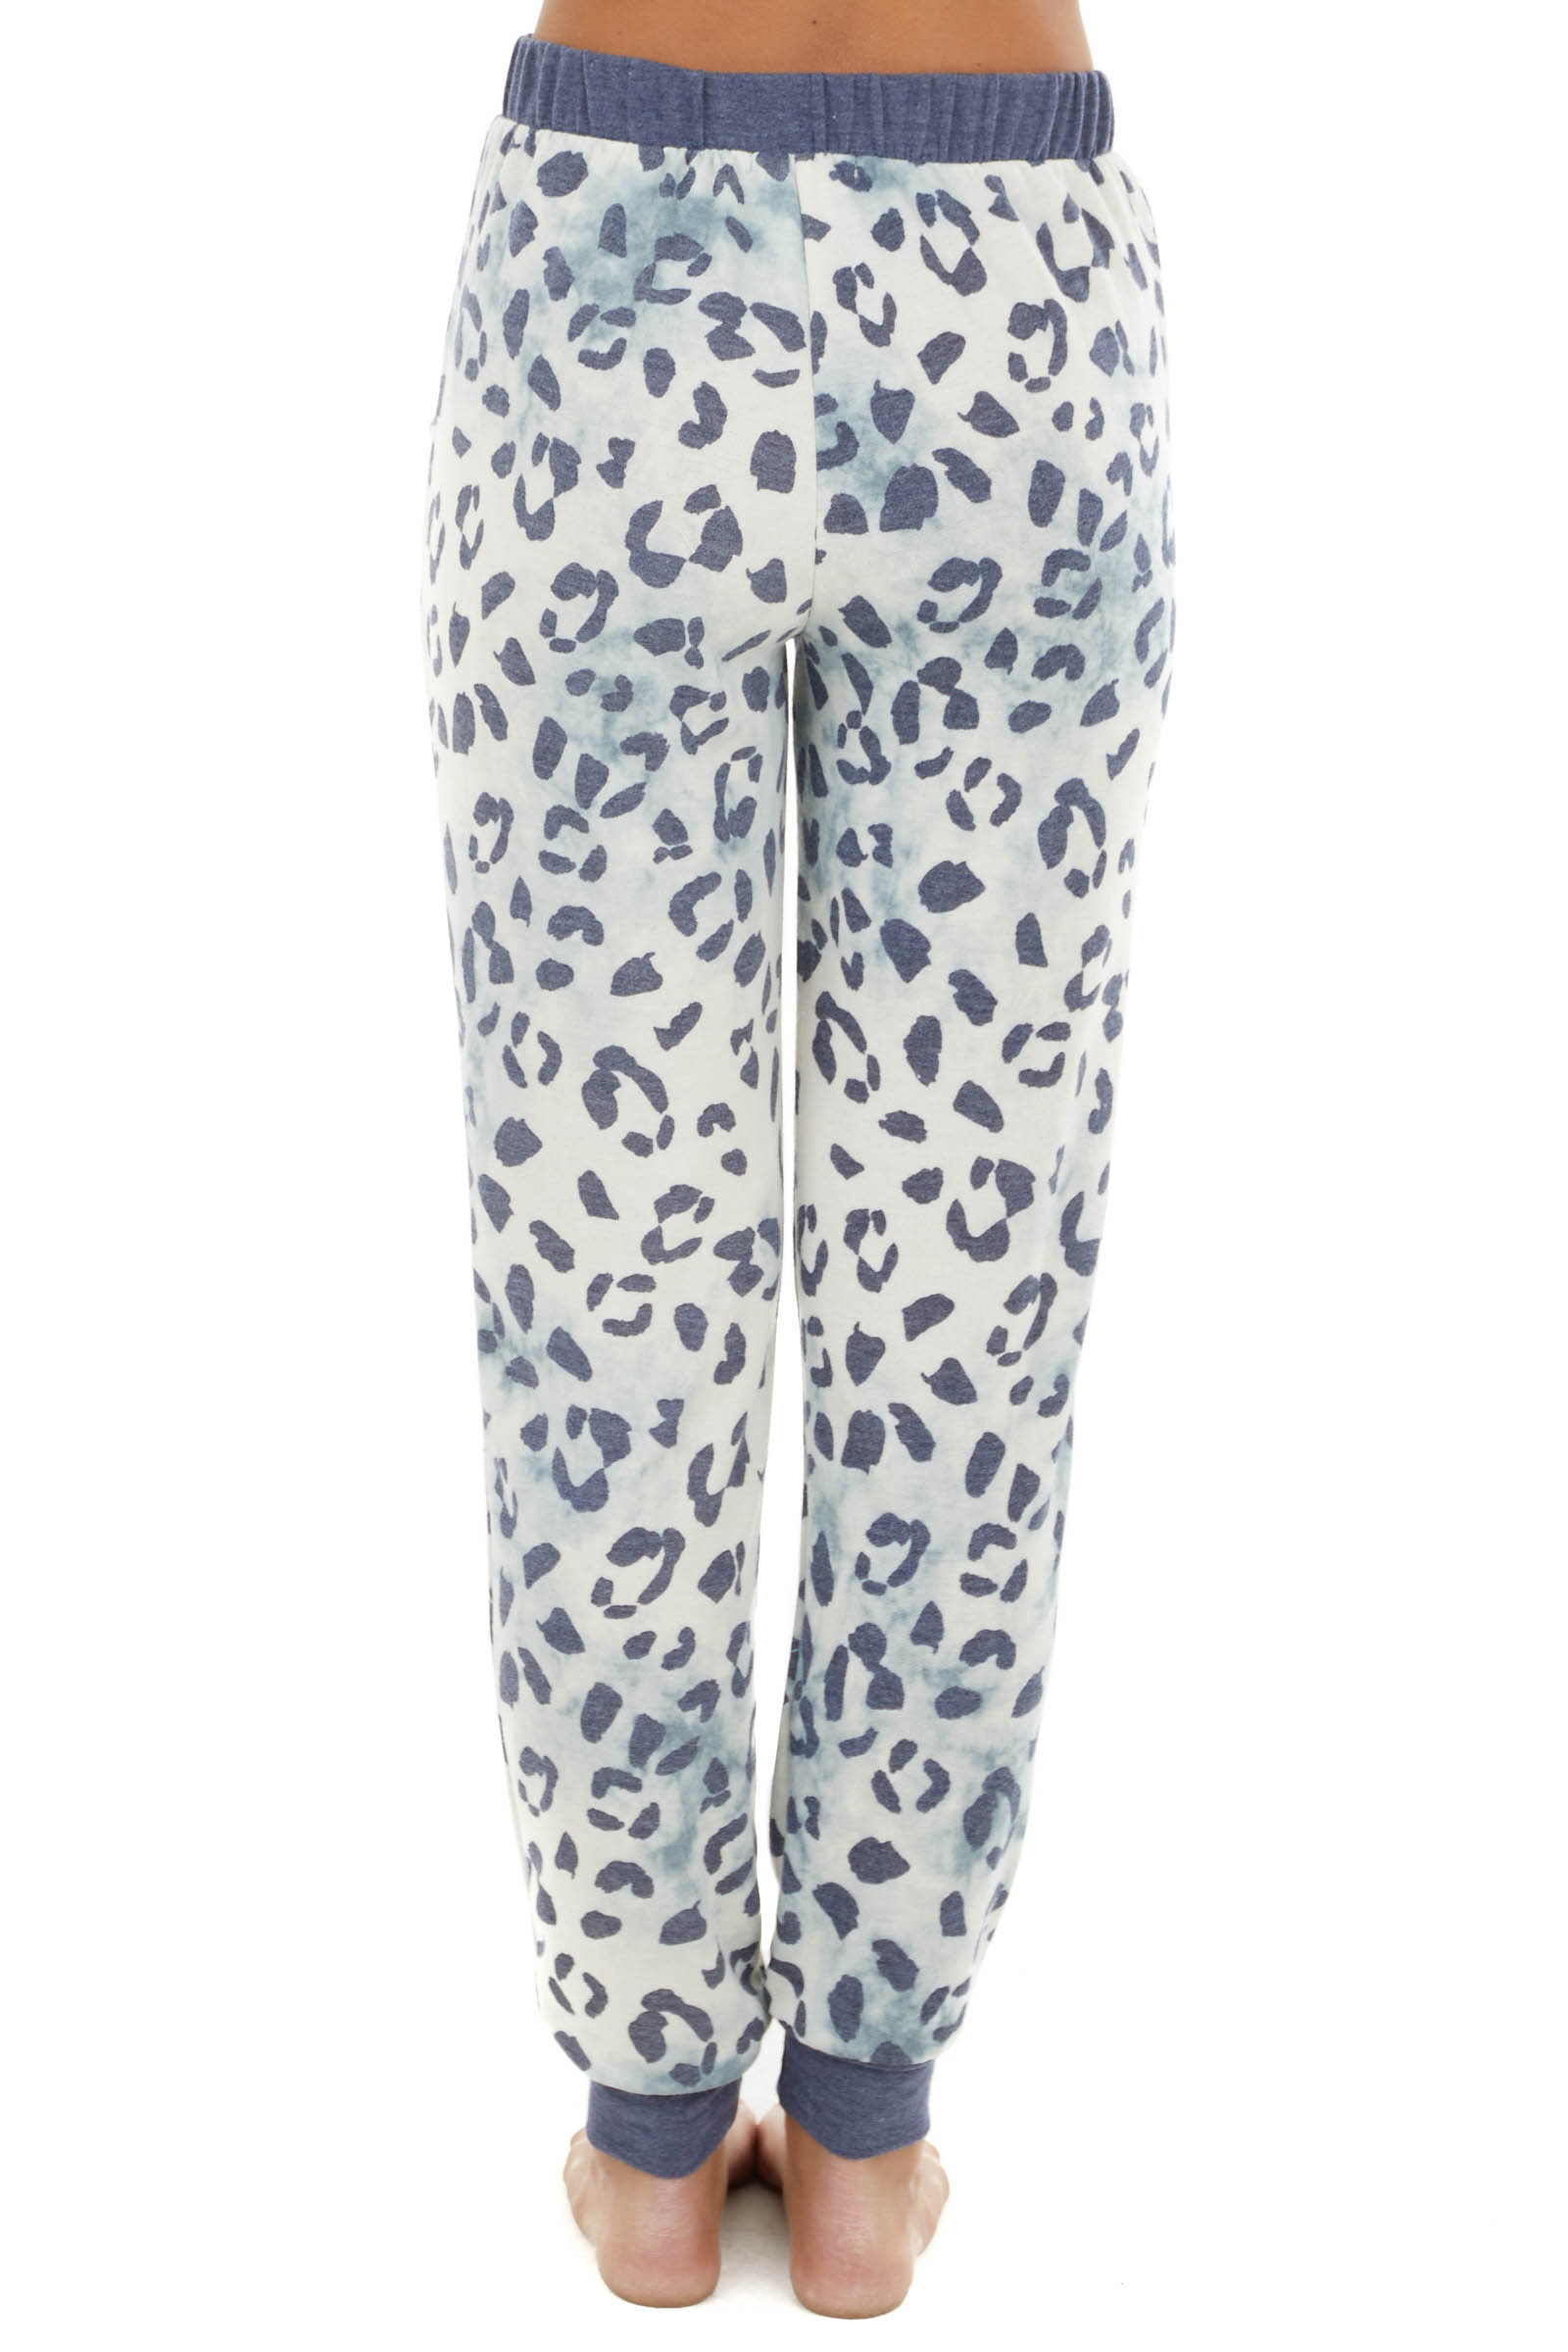 Cream and Blue Tie Dye Joggers with Leopard Print